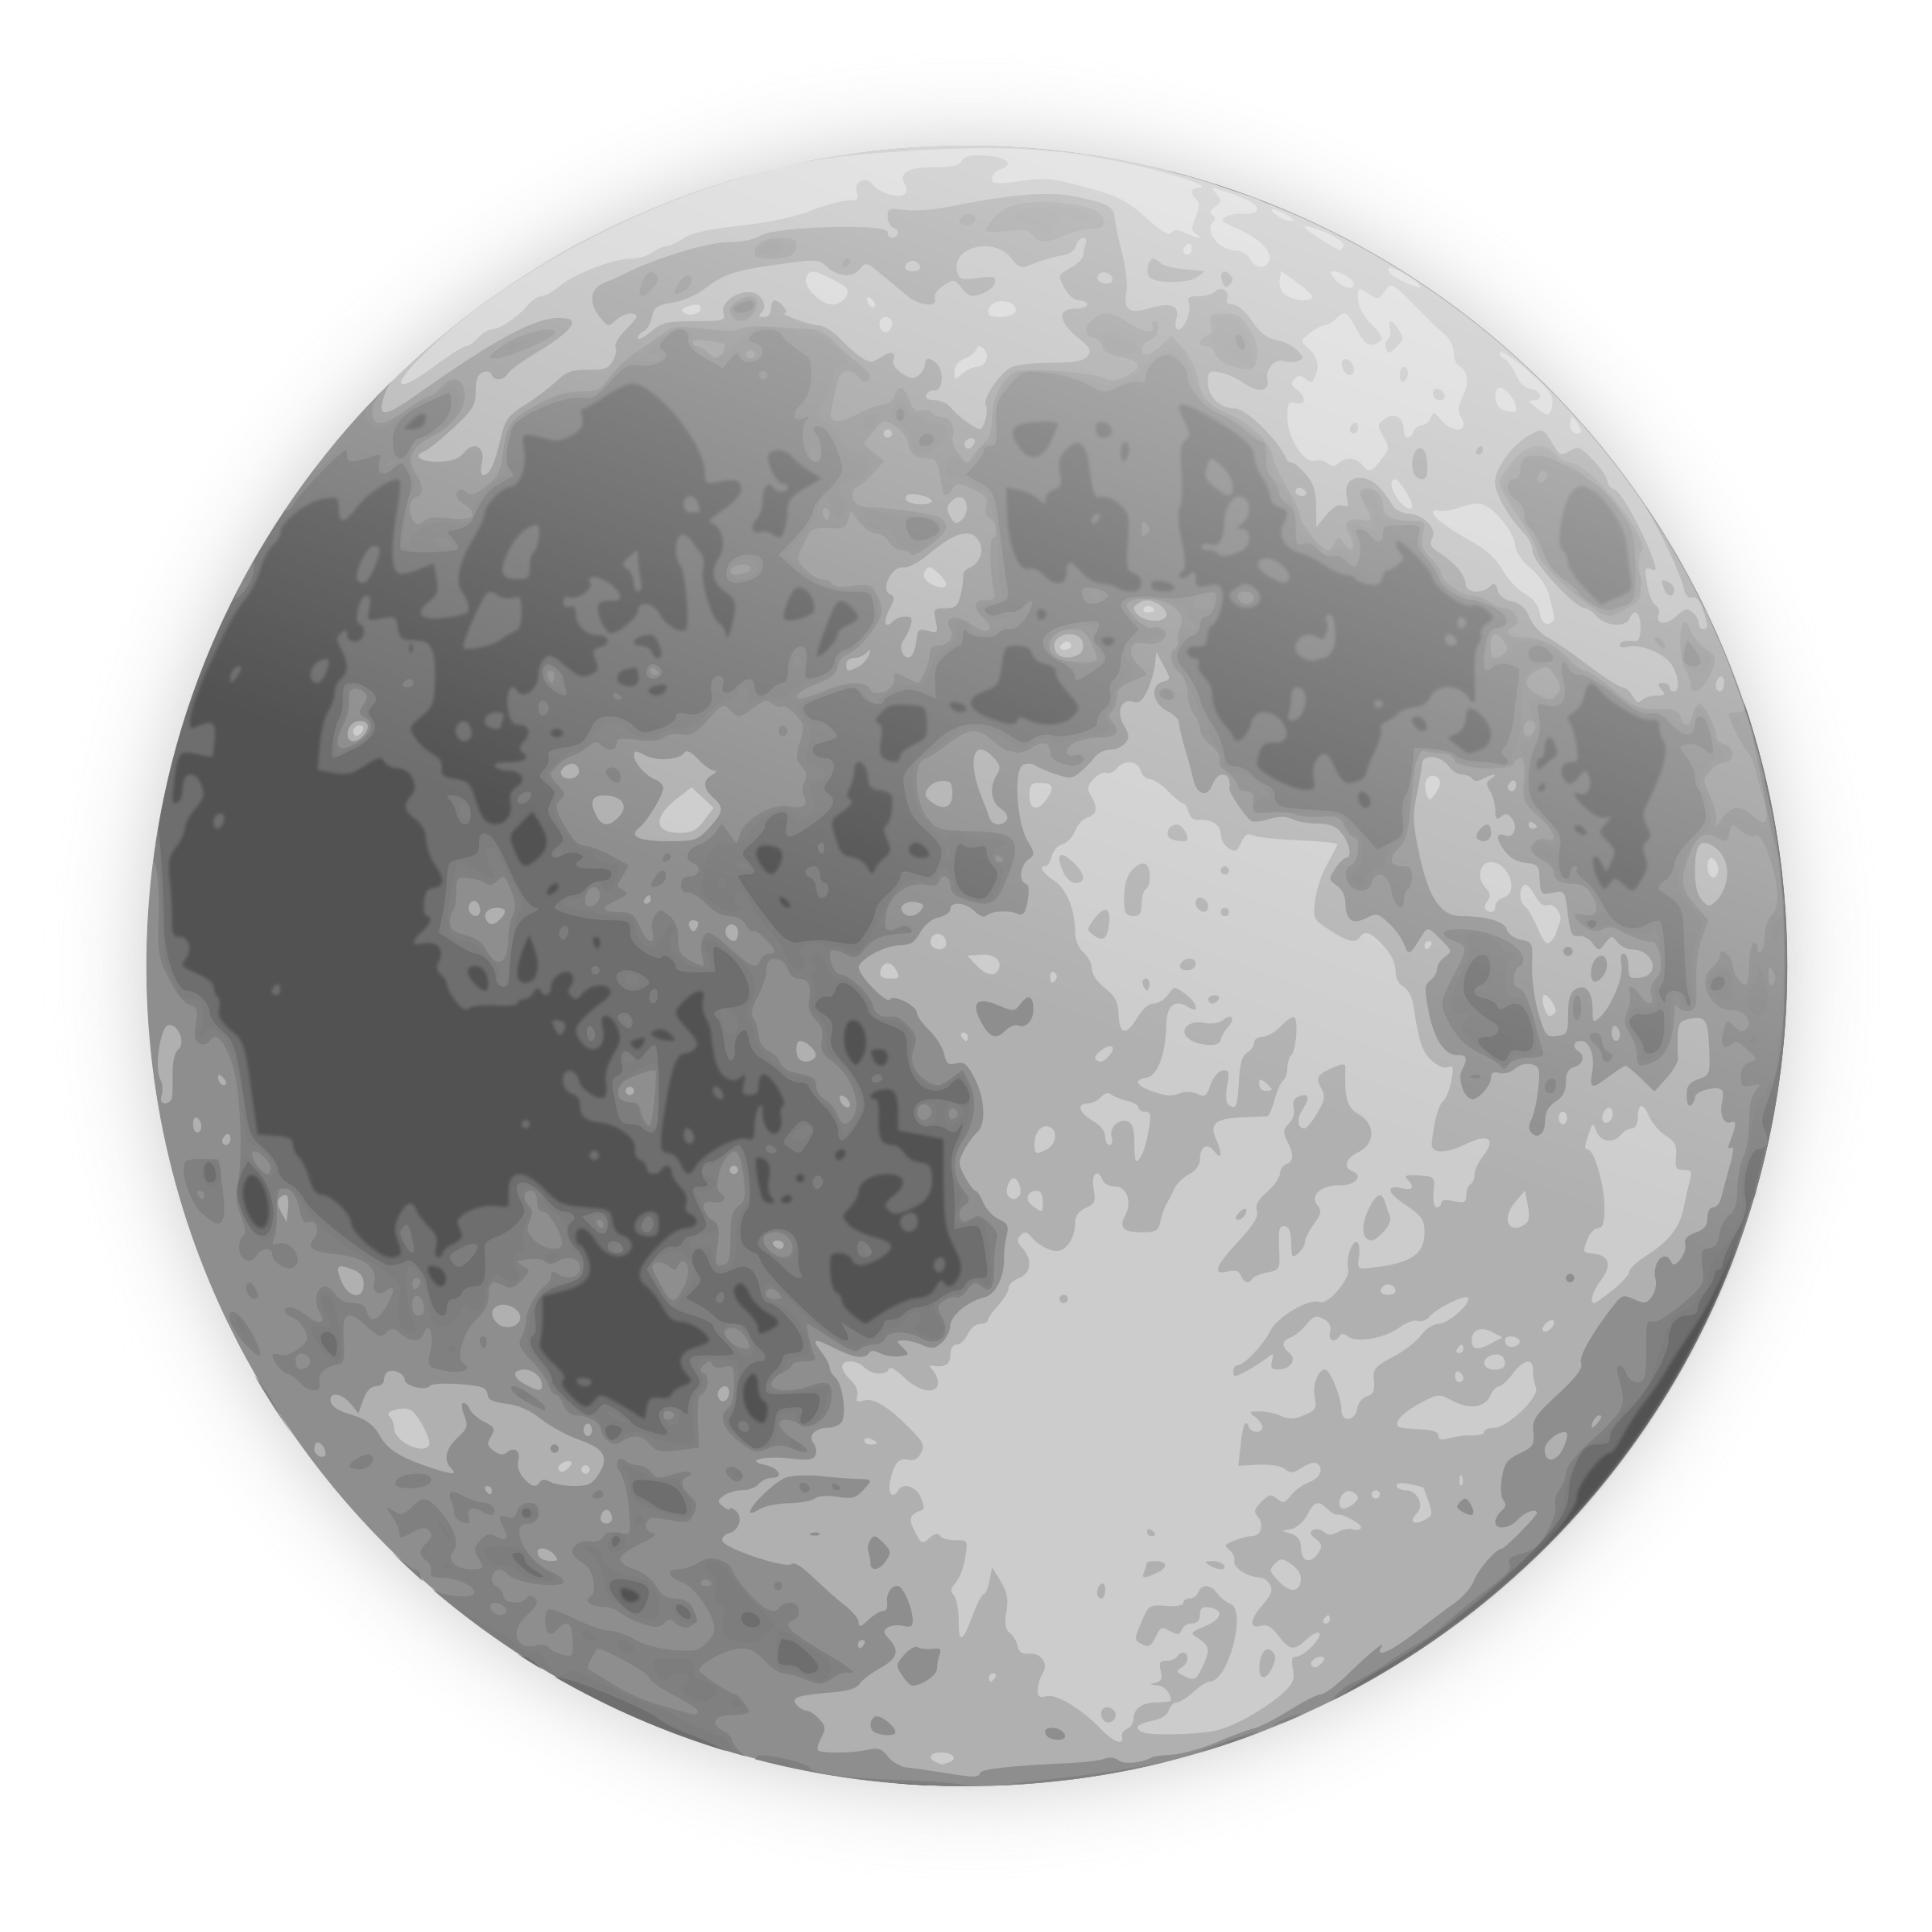 Moon Simple Png image #23653